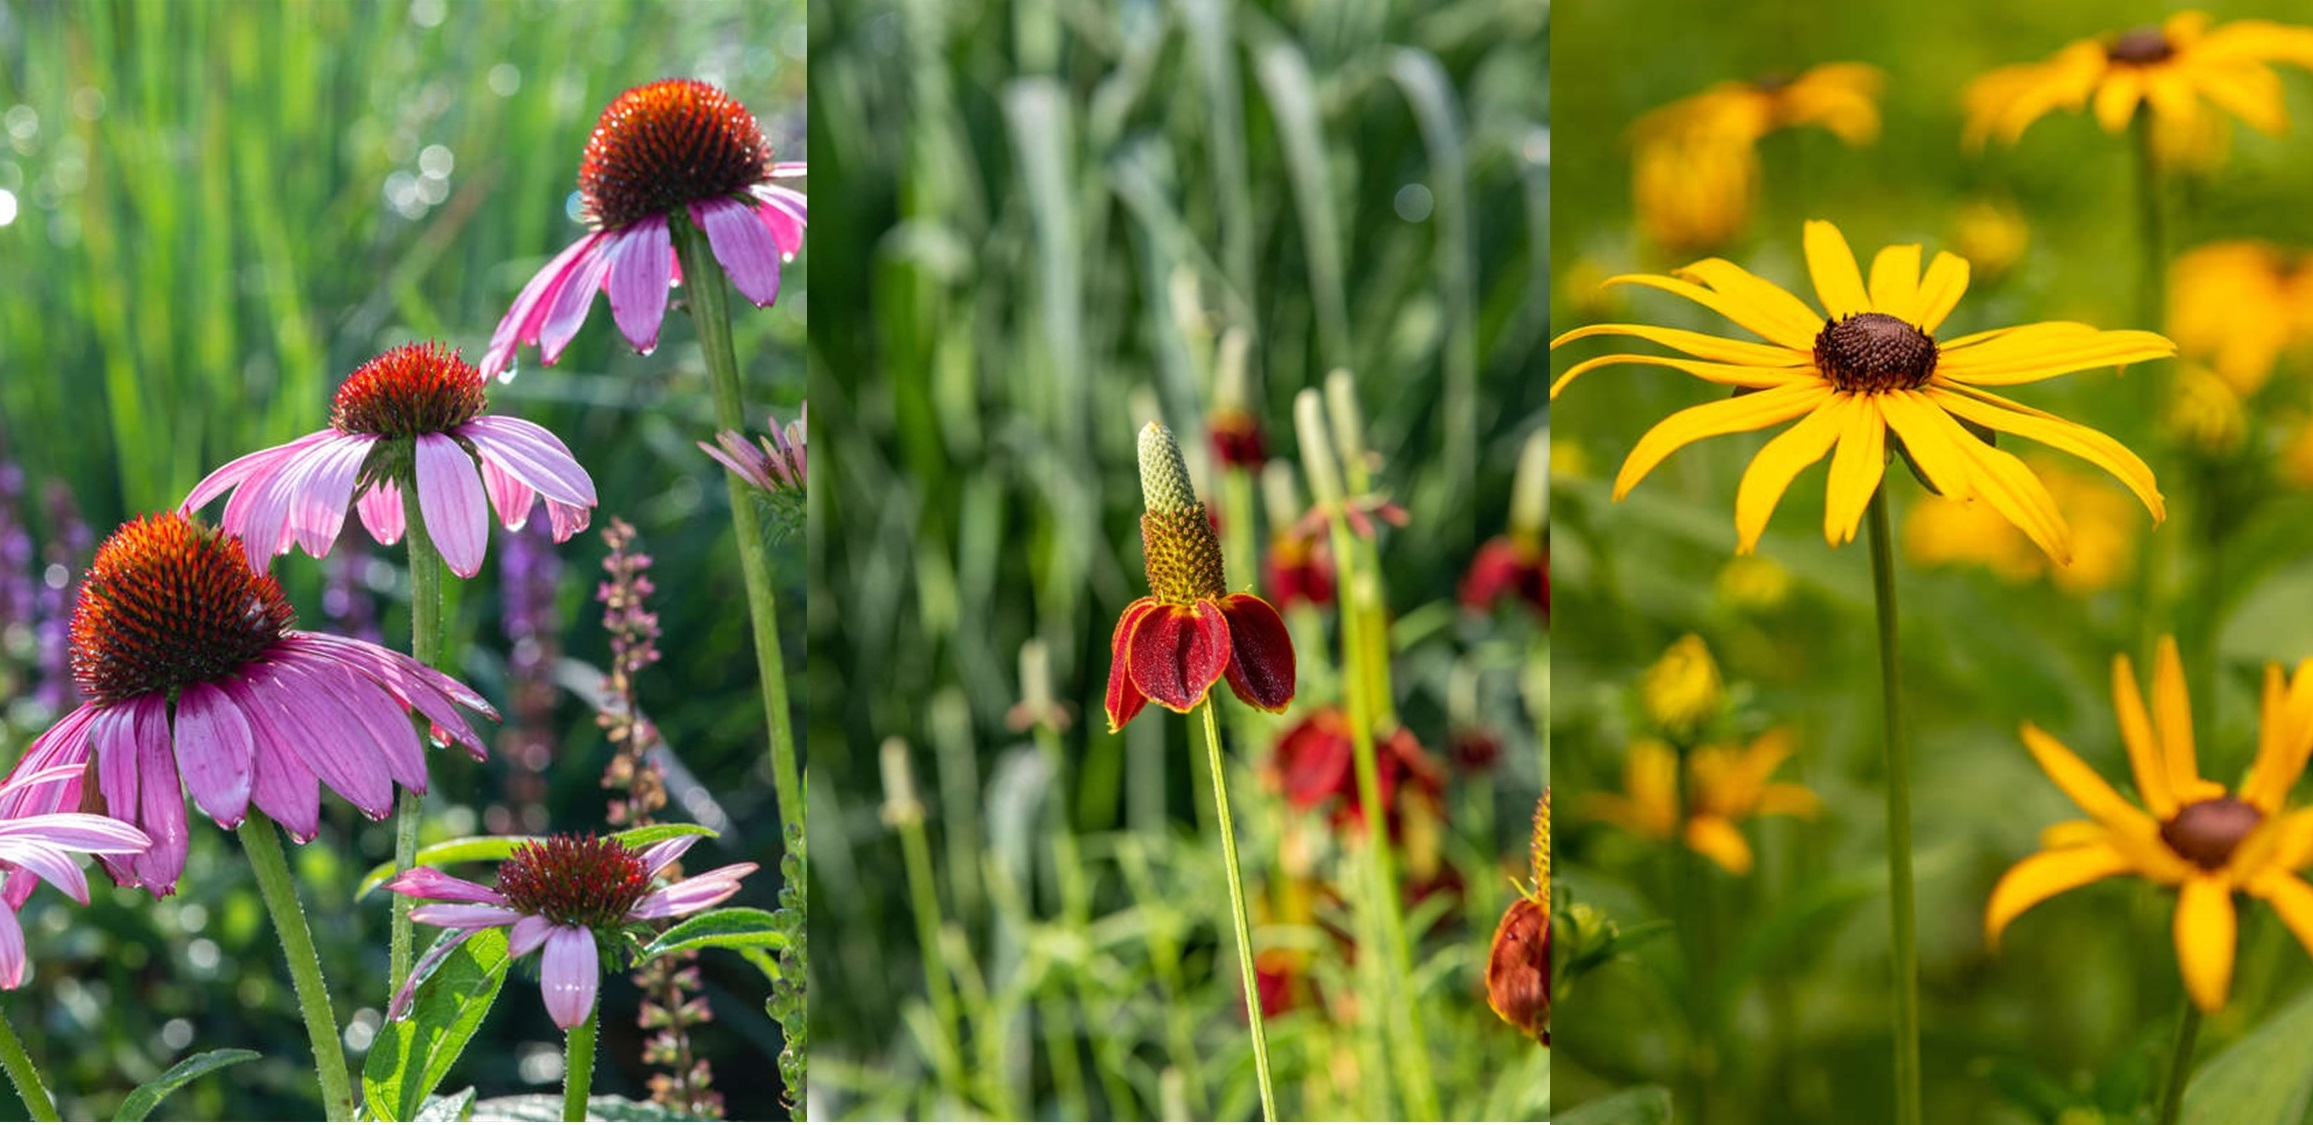 Echinacea (Photo by William Hill), Ratibida (Photo by Hank Davis), and Rudbeckia (Photo by Carol DeGuiseppi) are three different plants, all considered coneflowers.